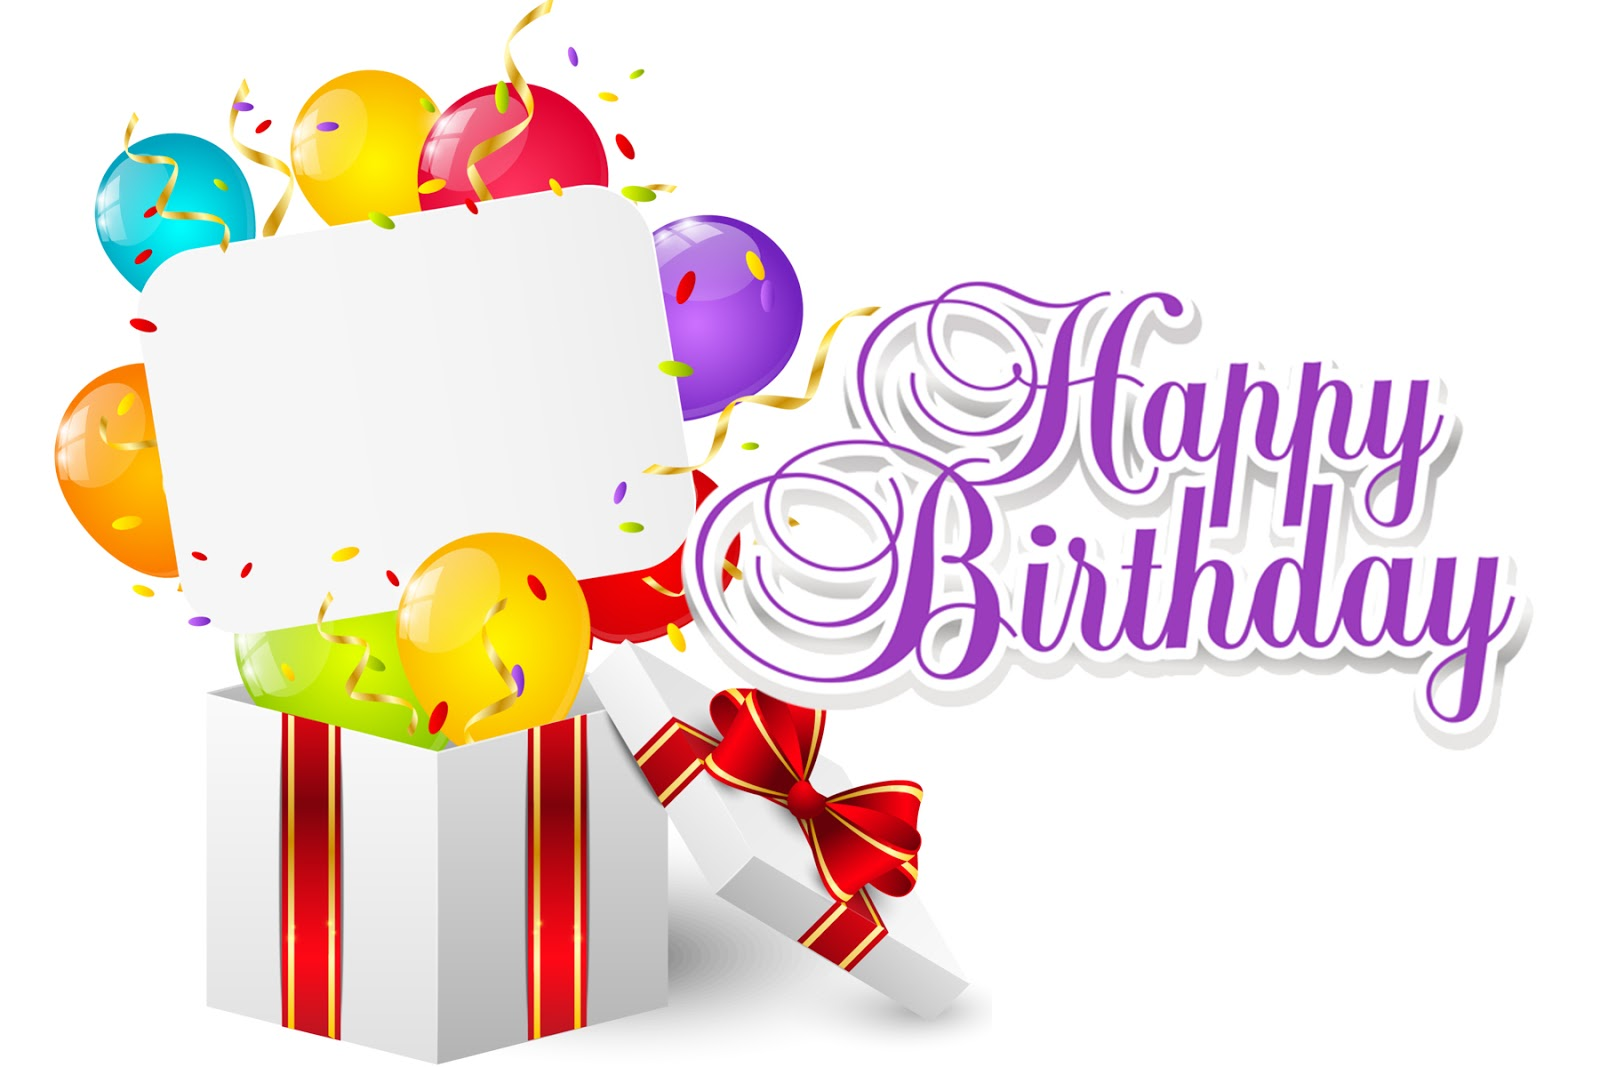 birthday wishes in hd images ; birthday%252Bwishes%252Bimages